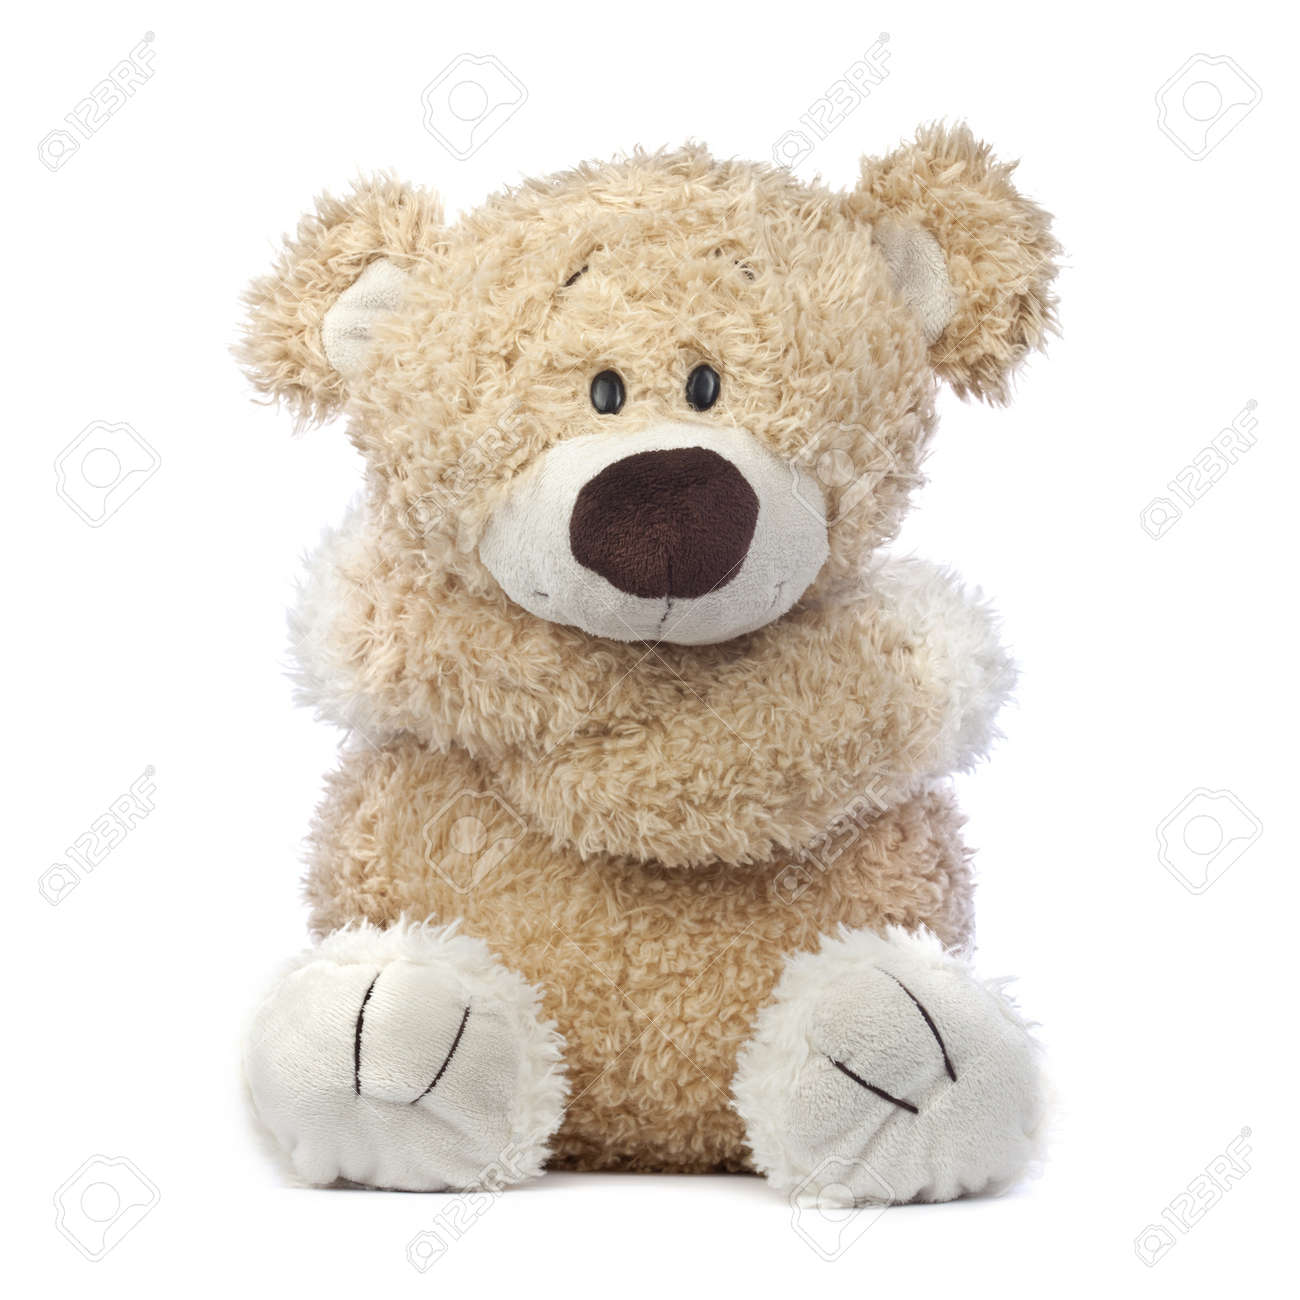 An adorable teddy bear that is cold sad and hurt hugging himself an adorable teddy bear that is cold sad and hurt hugging himself stock altavistaventures Choice Image